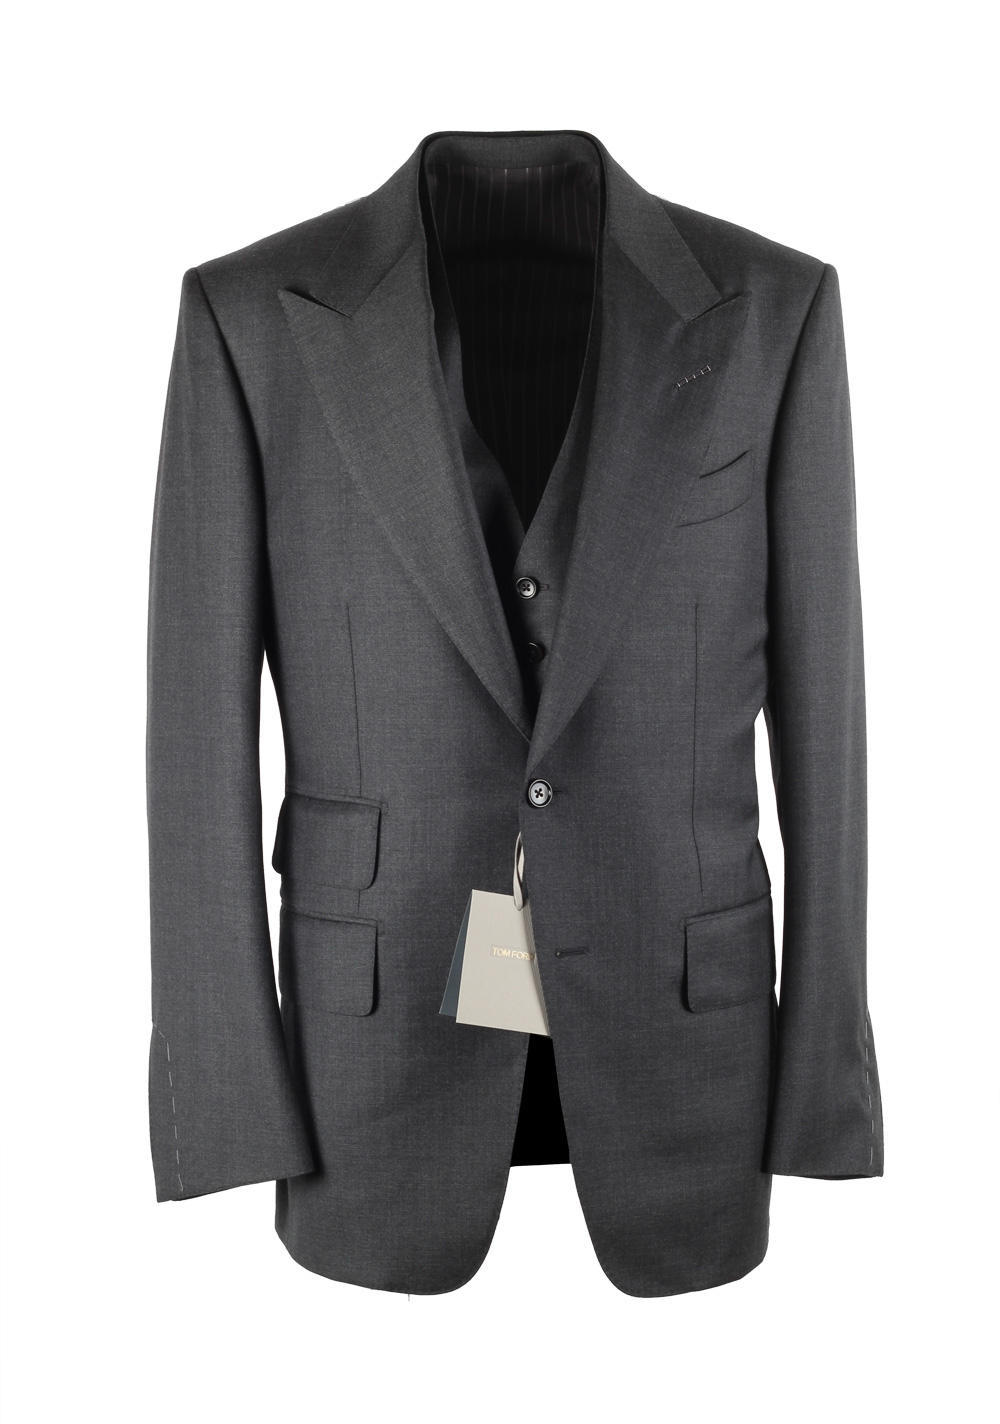 TOM FORD Windsor Gray 3 Piece Suit Size 54 / 44R U.S. Wool Fit A | Costume Limité